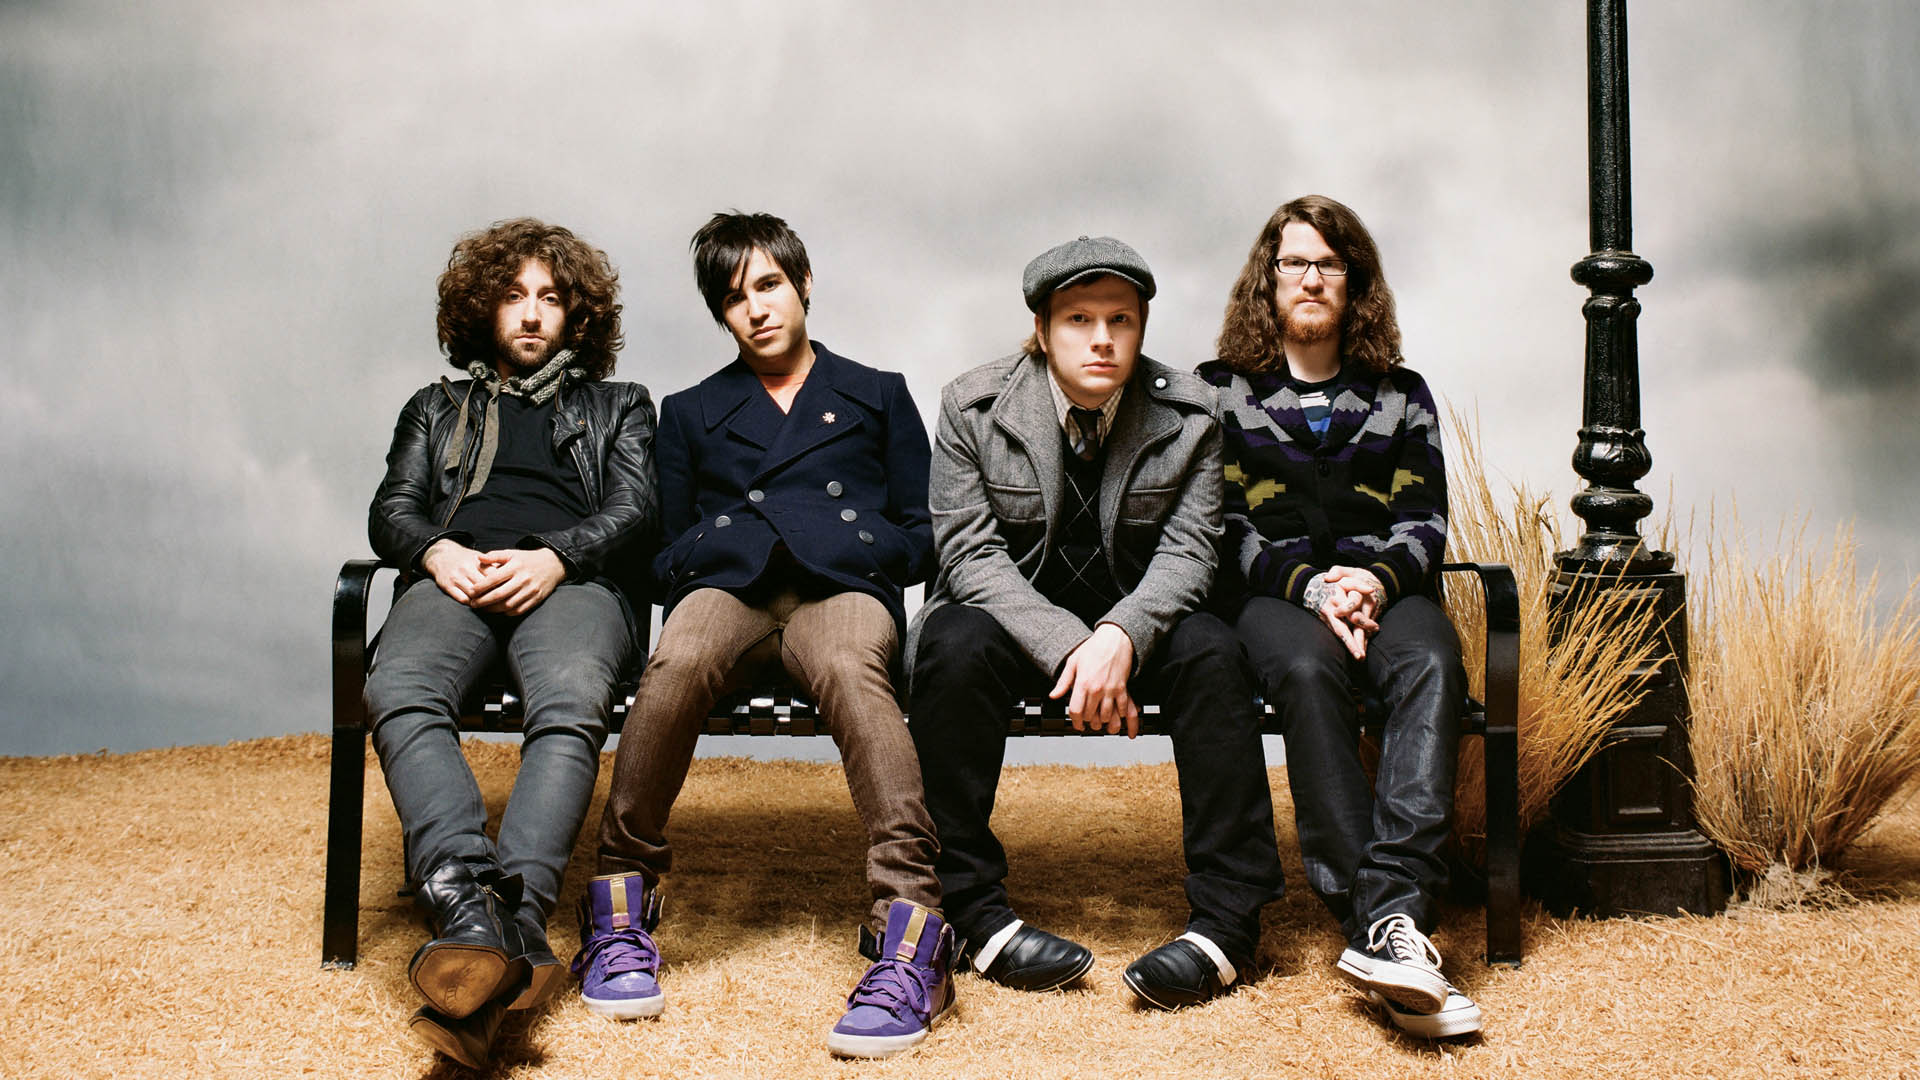 Fall Out Boy Iphone 6 Plus Wallpaper Fall Out Boy Computer Wallpapers Desktop Backgrounds